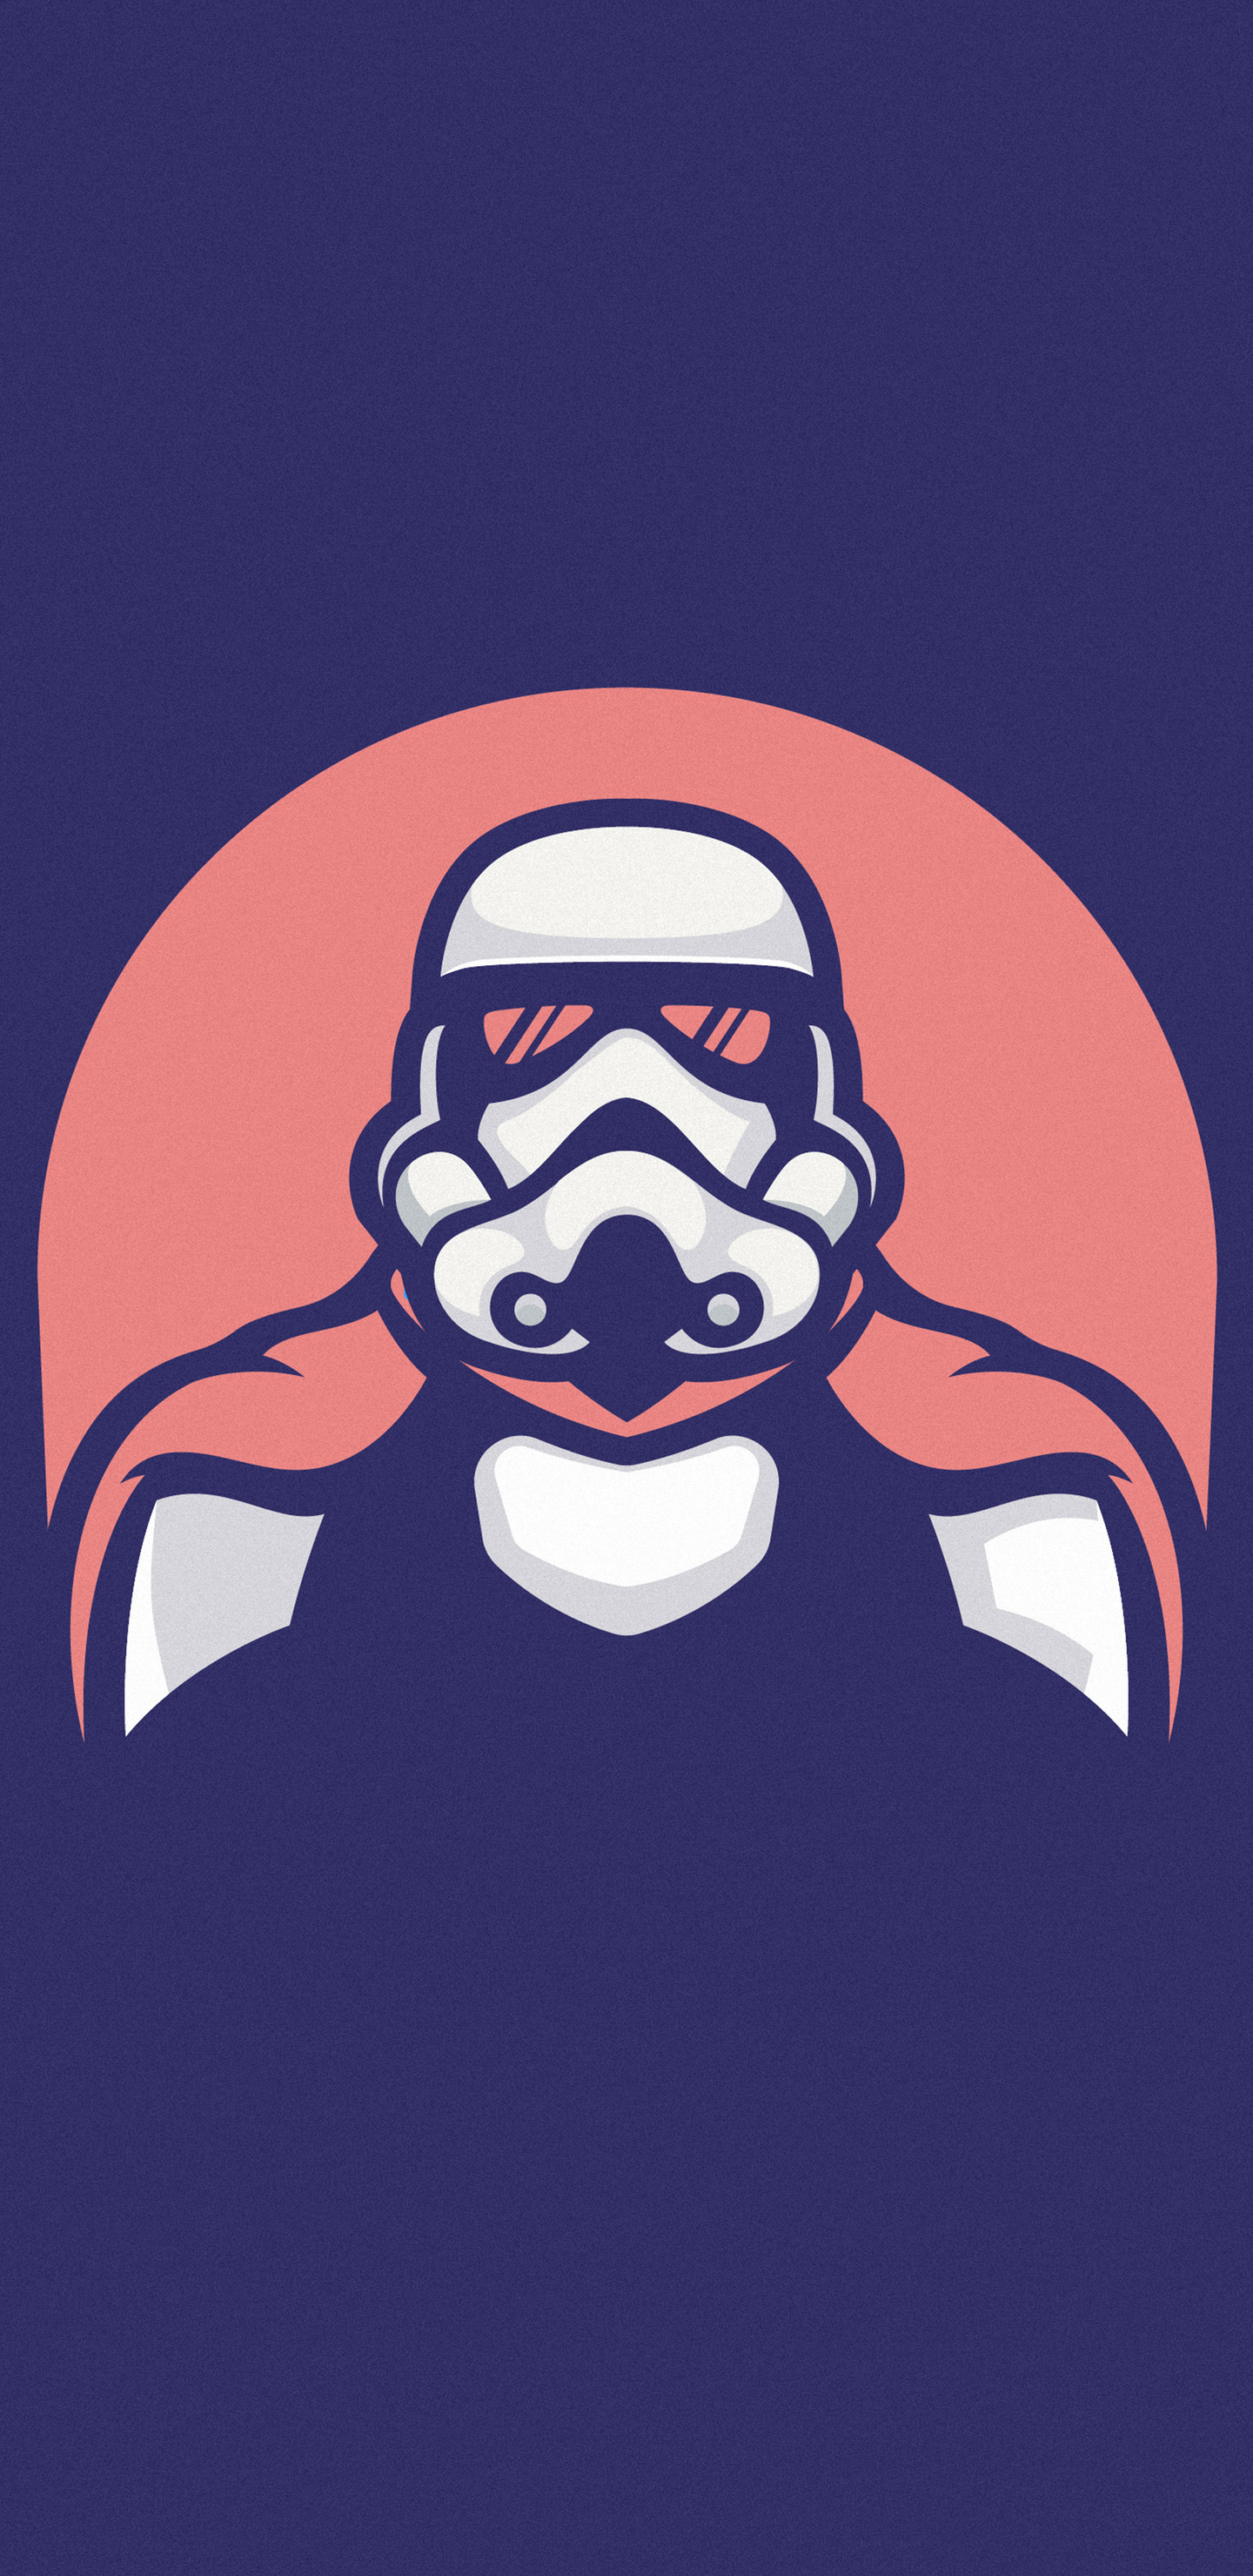 1440x2960 Star Wars Minimalist 4k Samsung Galaxy Note 9 8 S9 S8 S8 Qhd Hd 4k Wallpapers Images Backgrounds Photos And Pictures